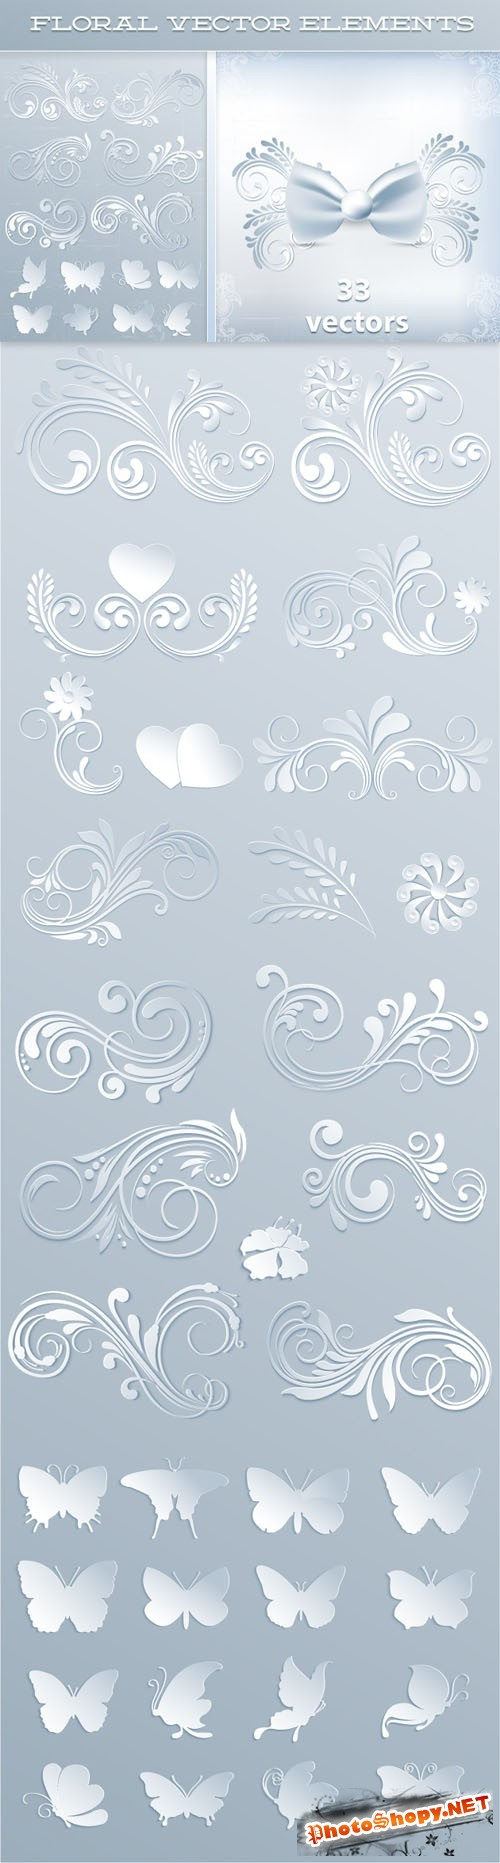 Designtnt - Abstract 3D Floral Vector Set 1